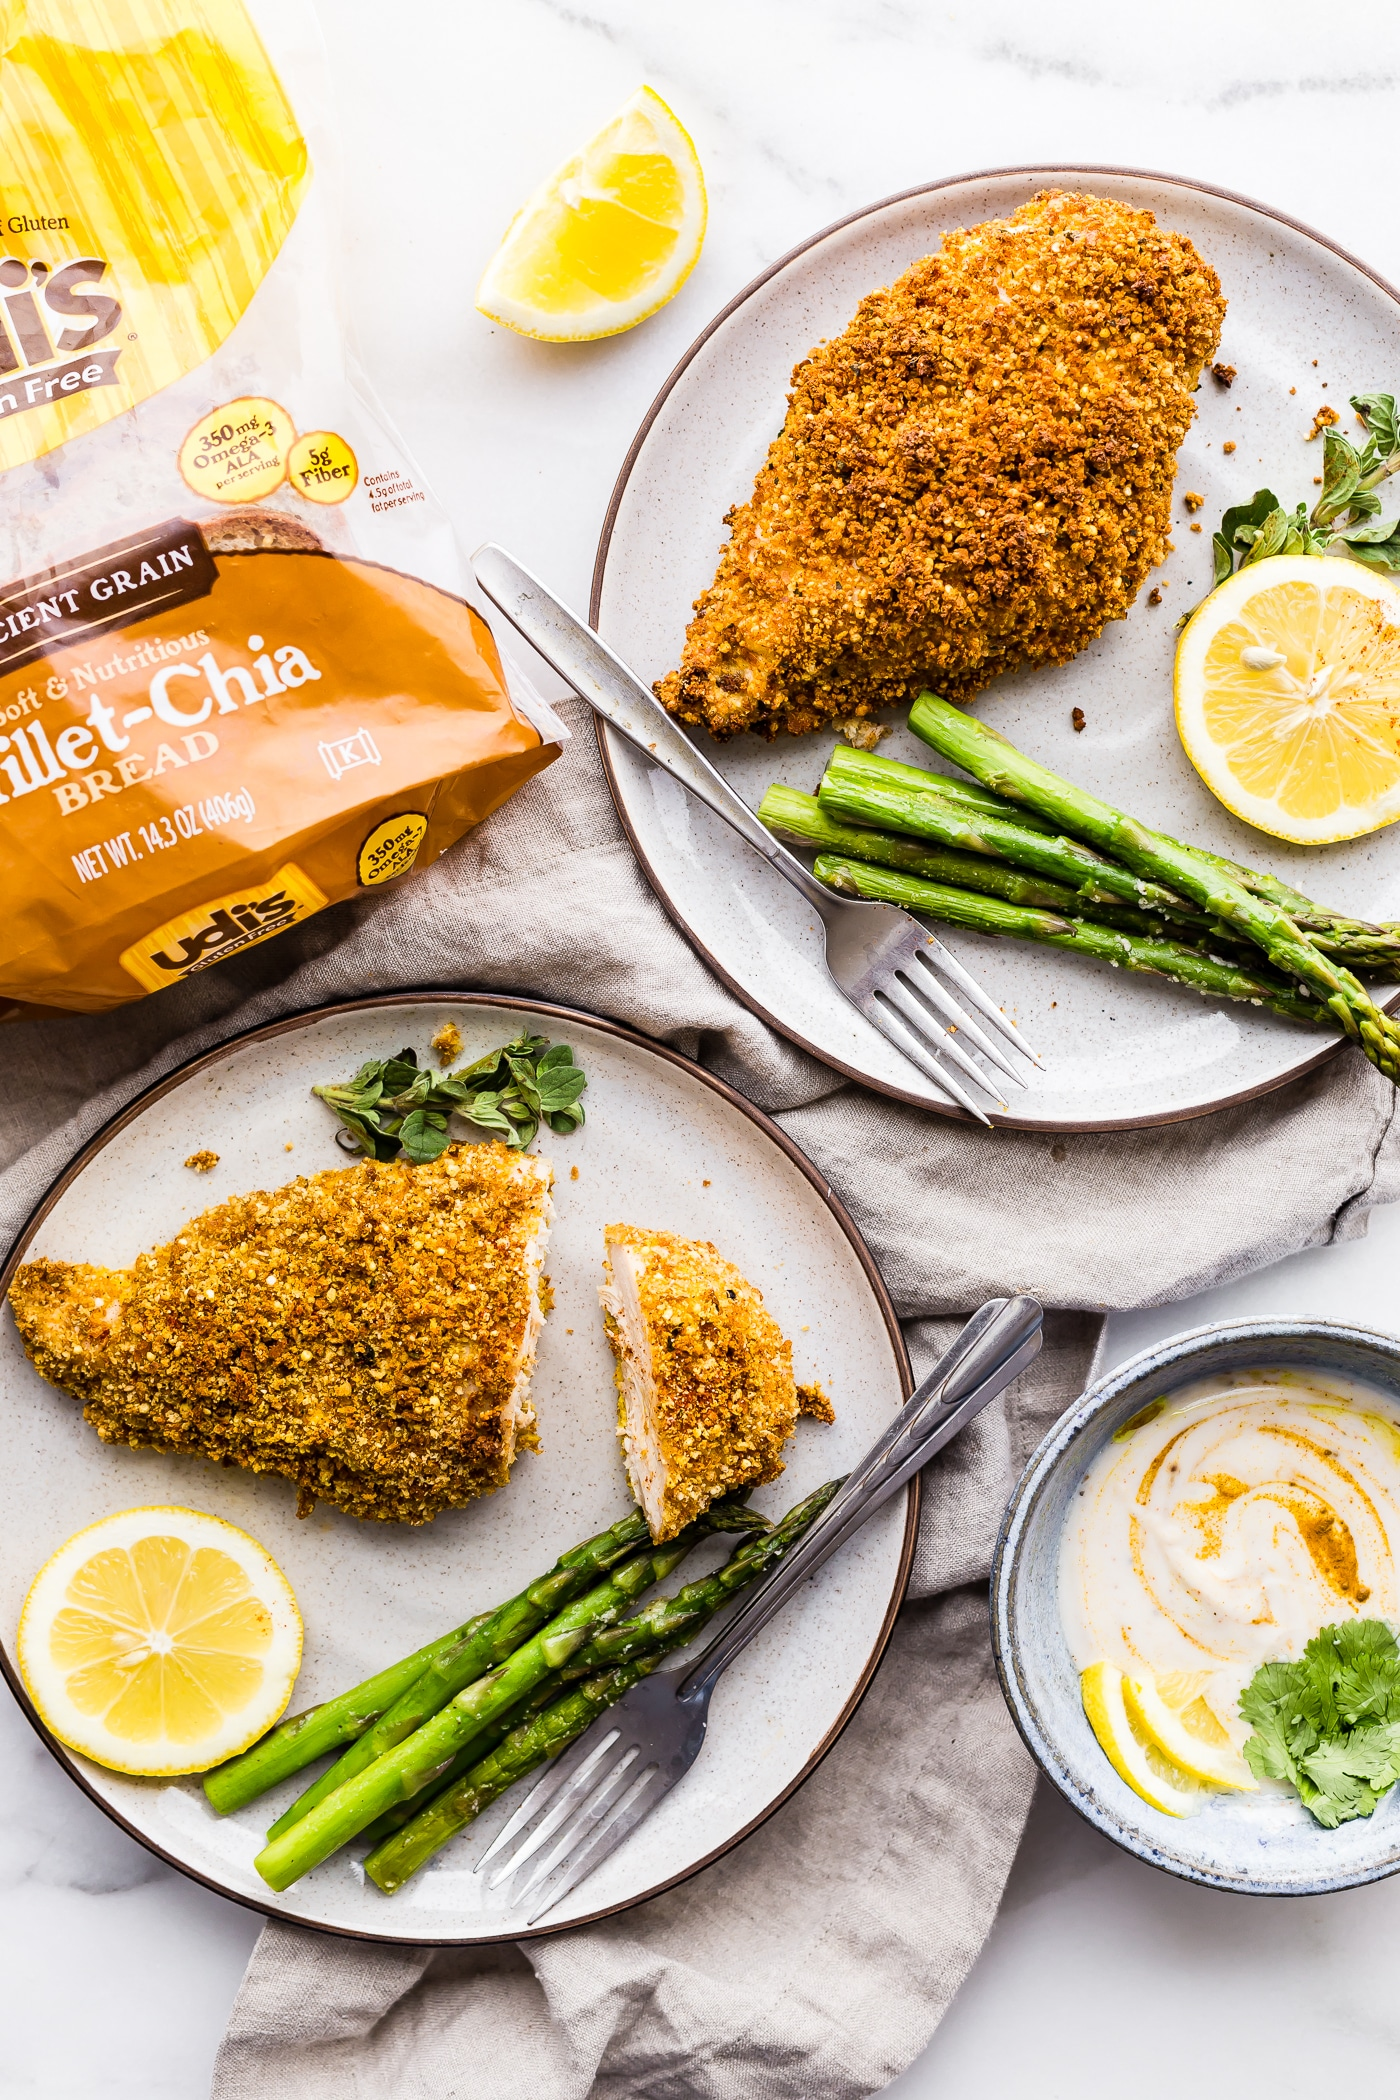 A Crowd pleasing #GlutenFree Recipe! Gluten Free Panko Crusted Paprika Chicken with veggies! @udisglutenfree #sp #udisglutenfree